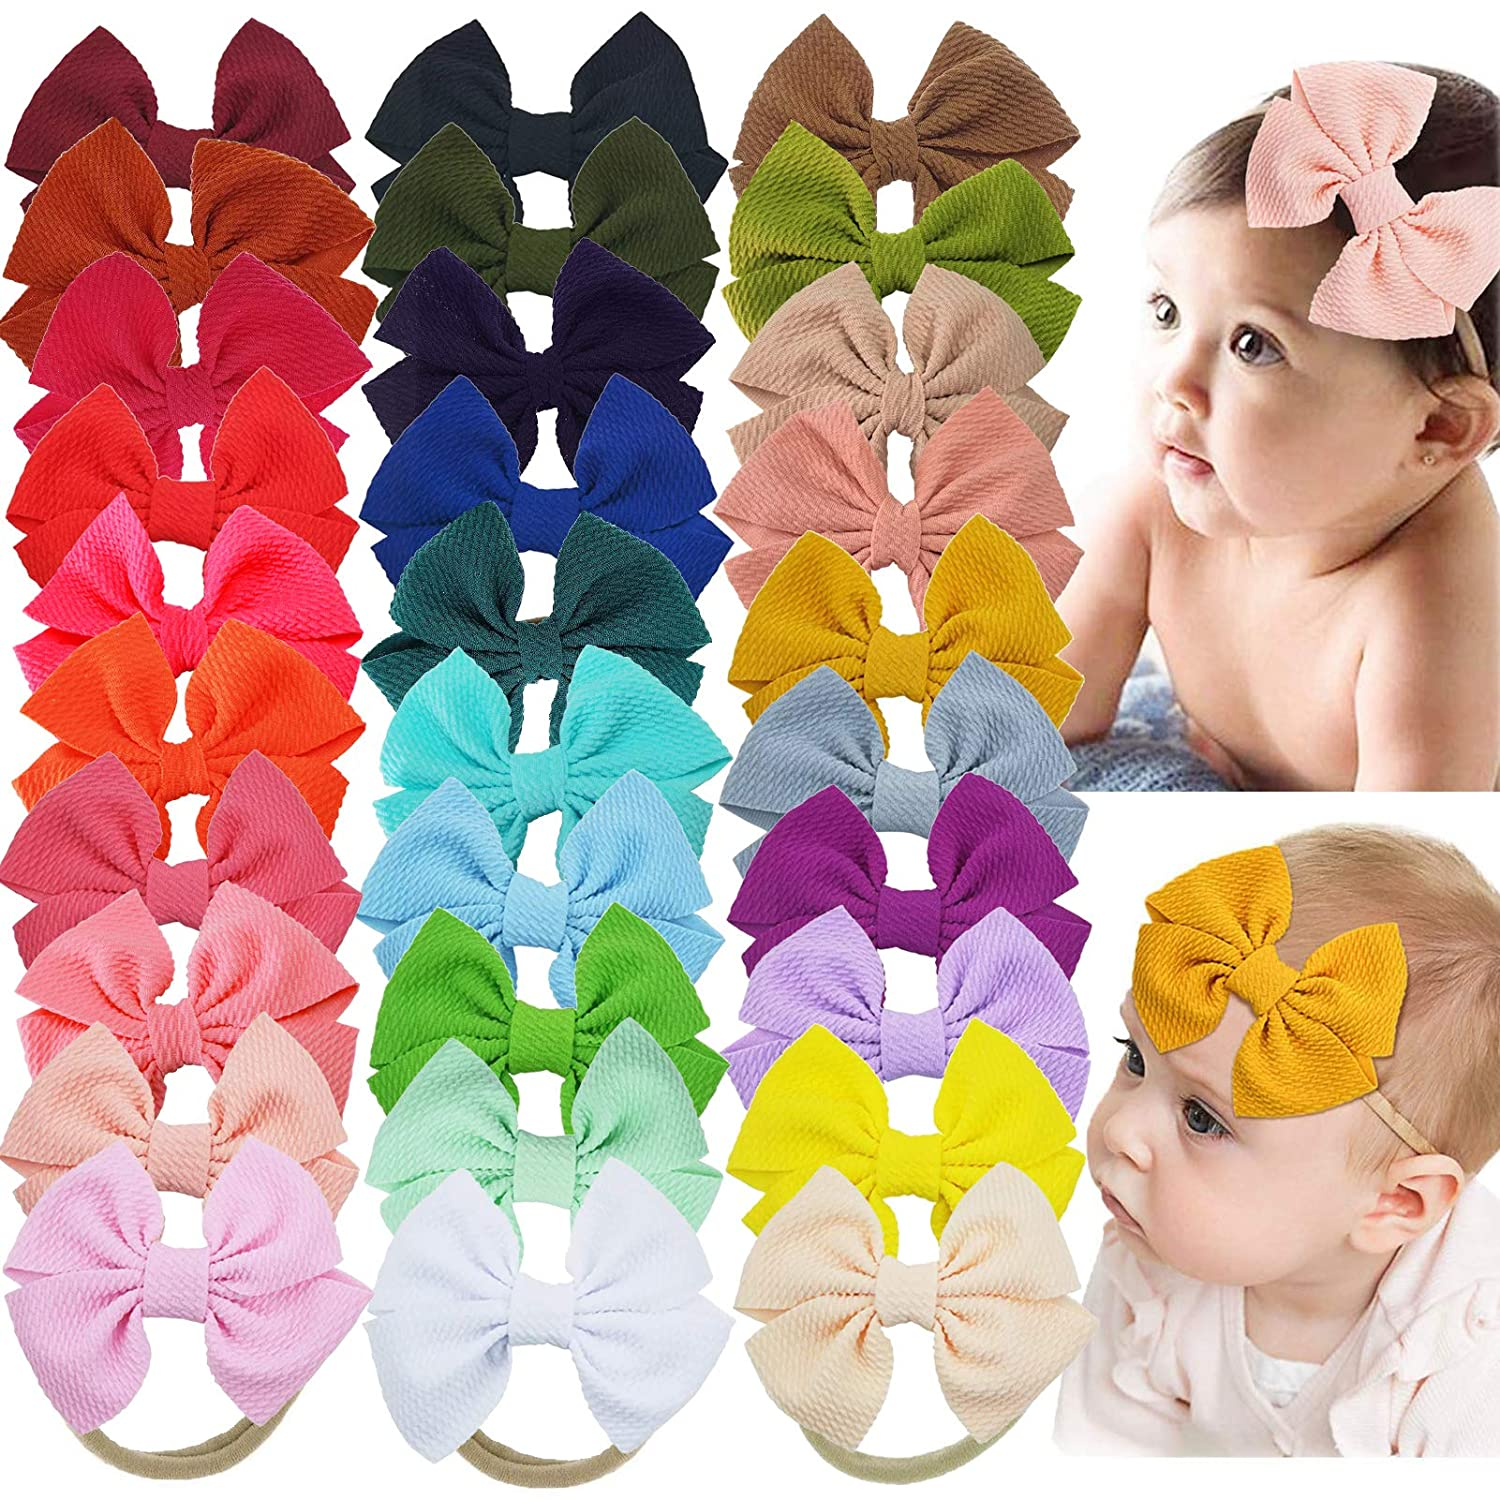 ALinmo 30 Colors Baby Girls Headbands 70% OFF Outlet 4.5